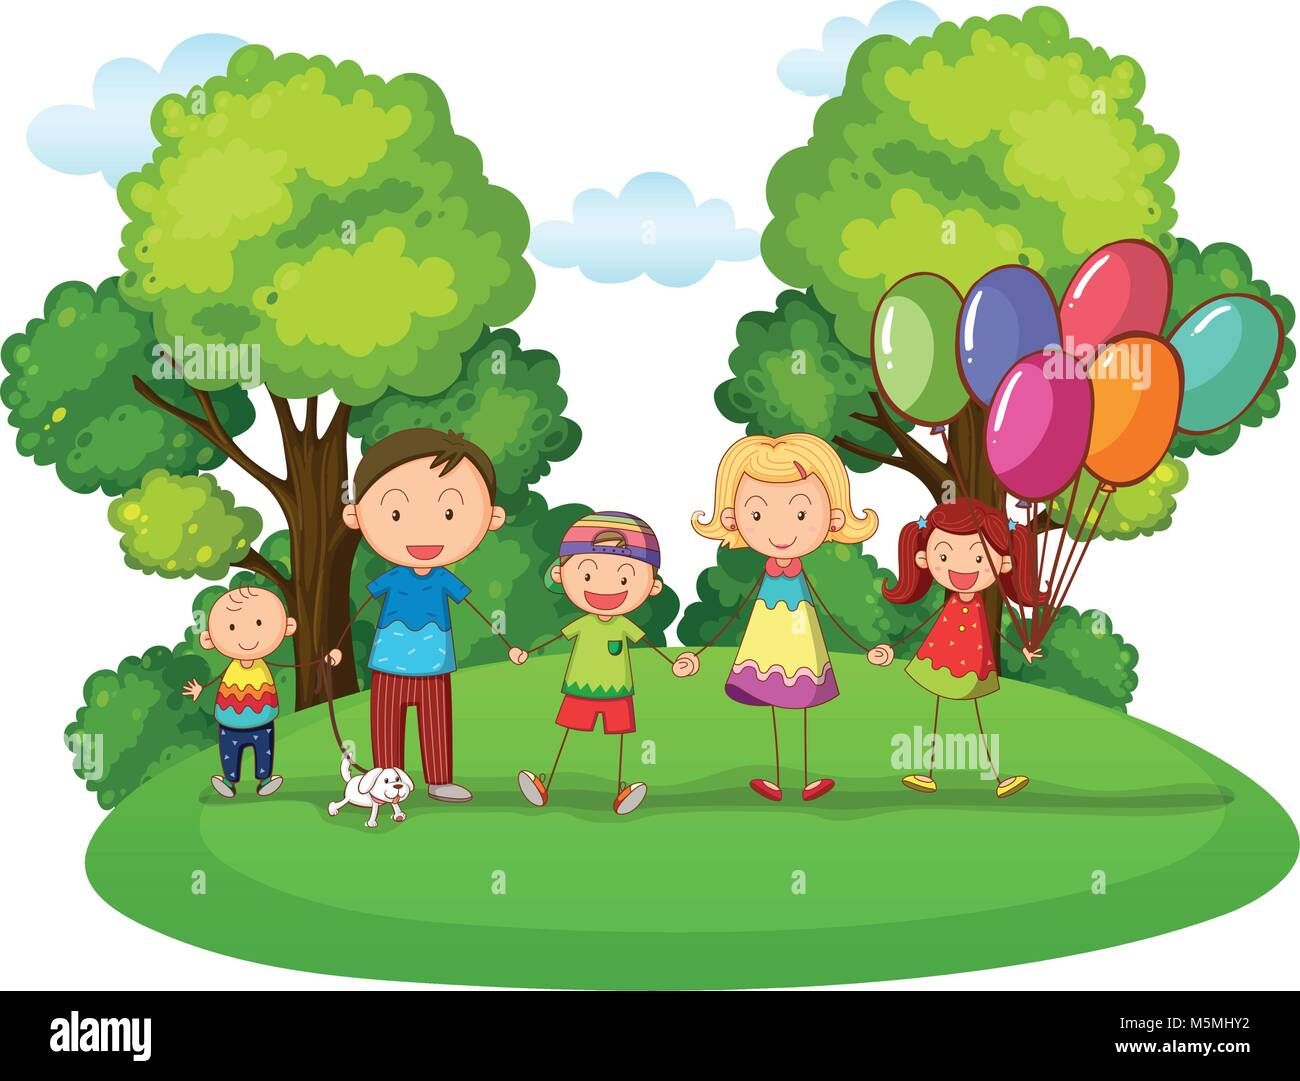 Family with three kids playing in park illustration - Stock Vector